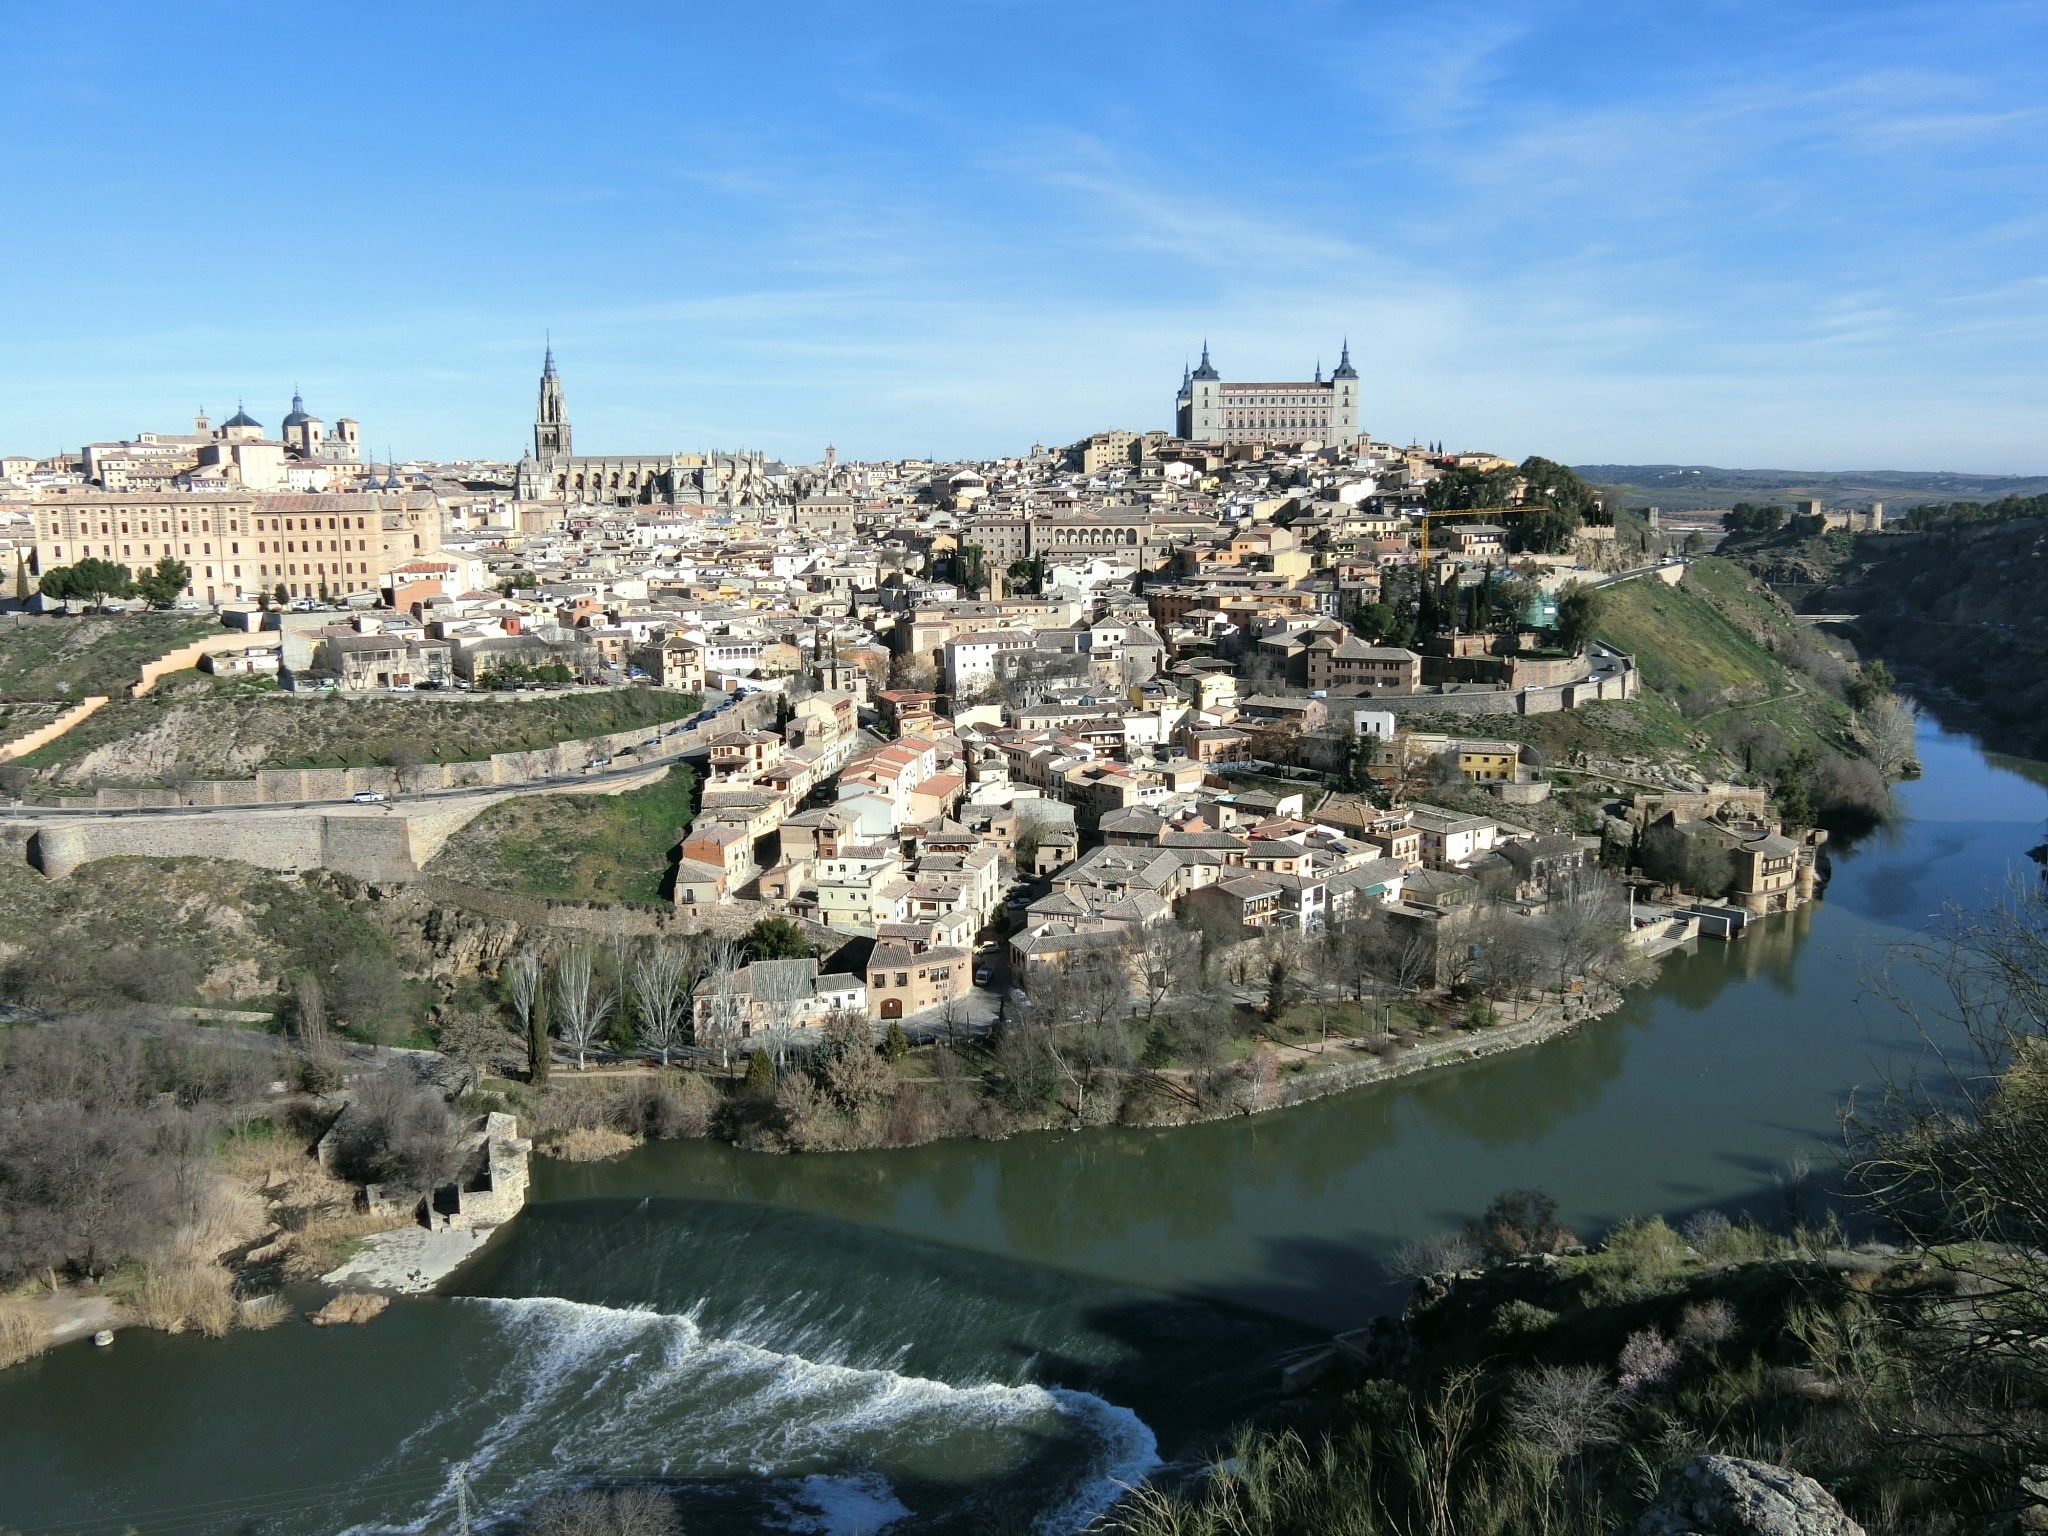 Old town of Toledo, Madrid by pop88123